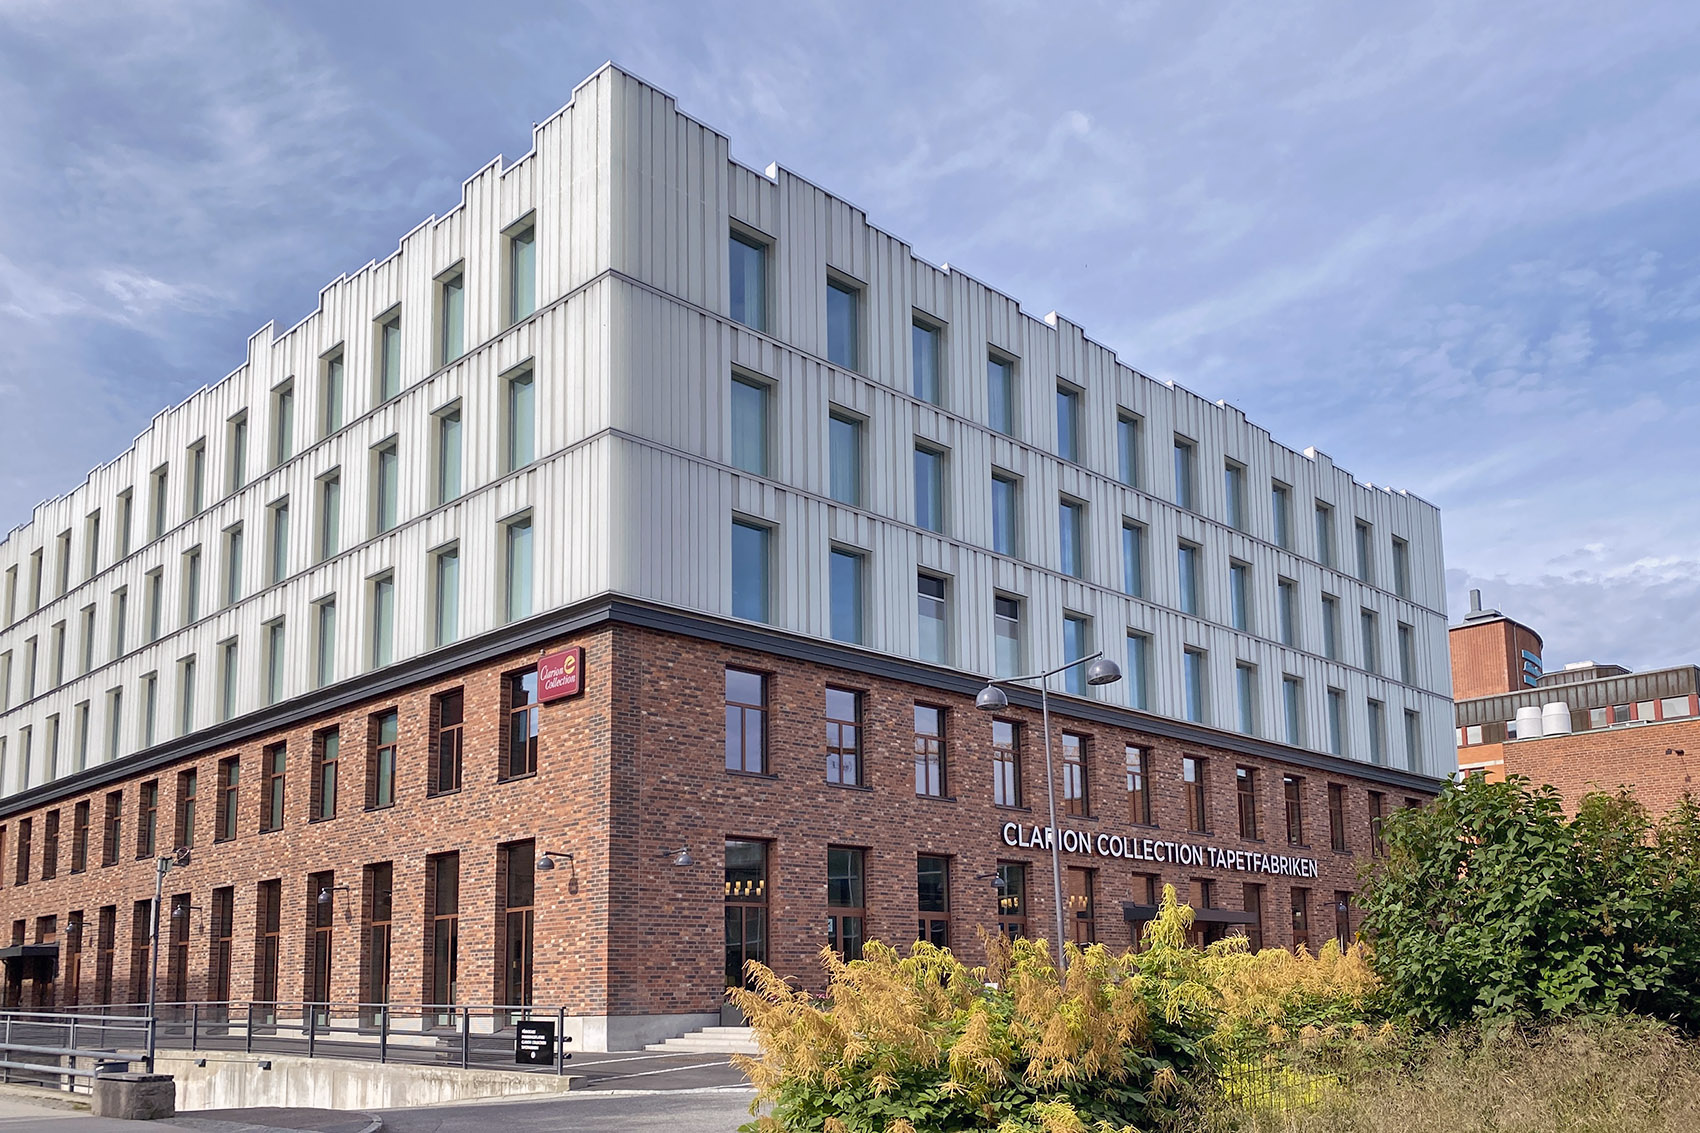 Clarion Collection Hotel Tapetfabriken